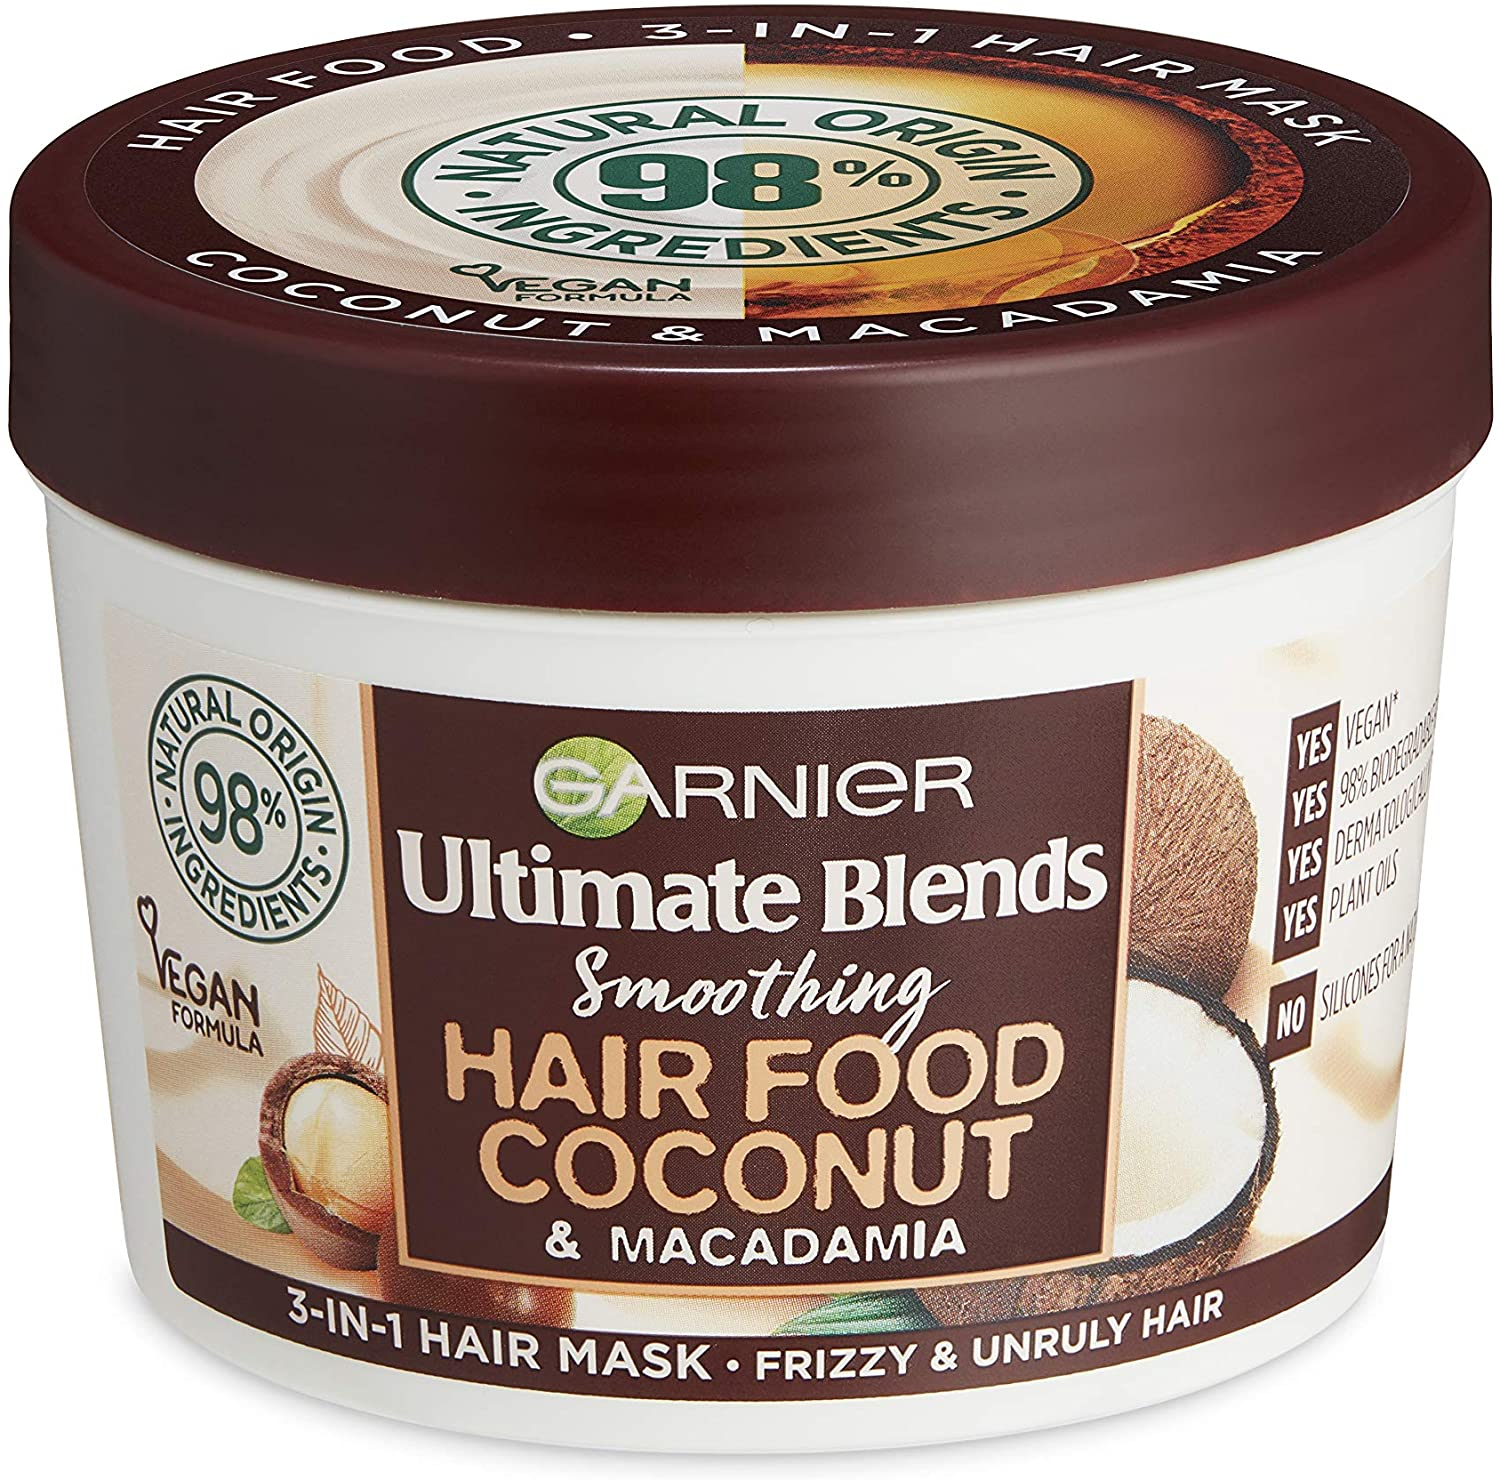 Garniercoconut hair food